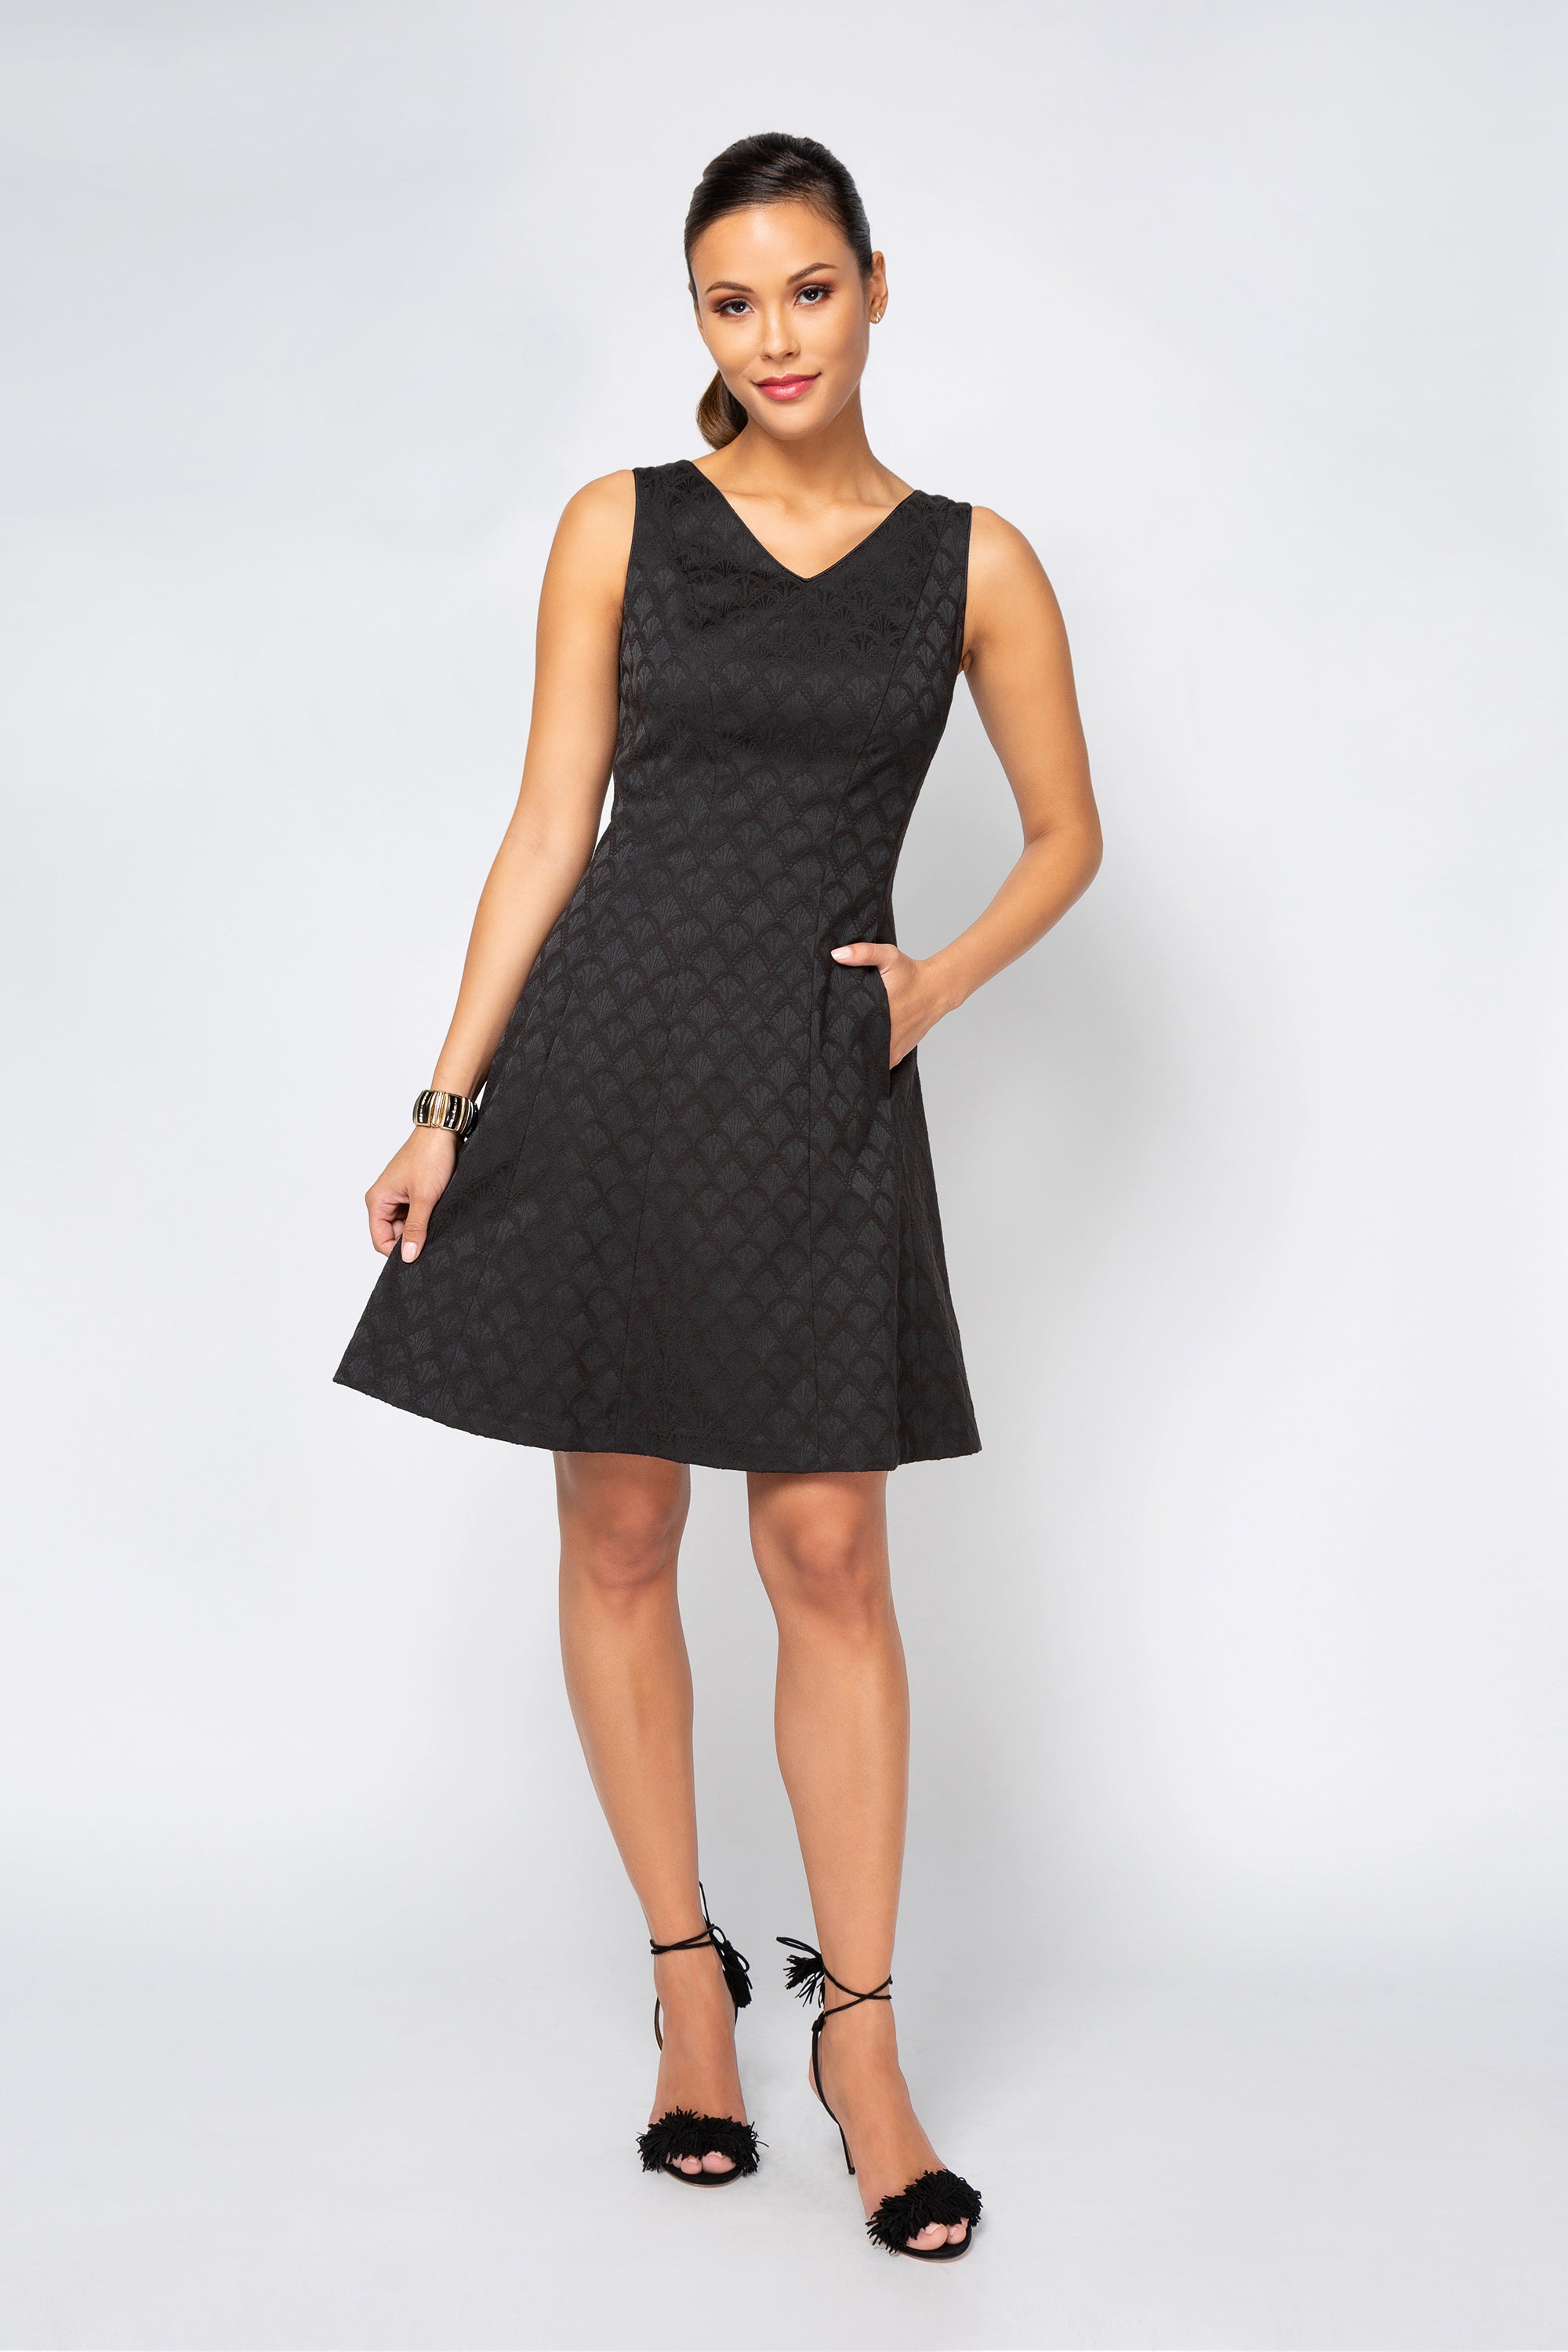 Women's Samantha Dress in Black | Nora Gardner Front